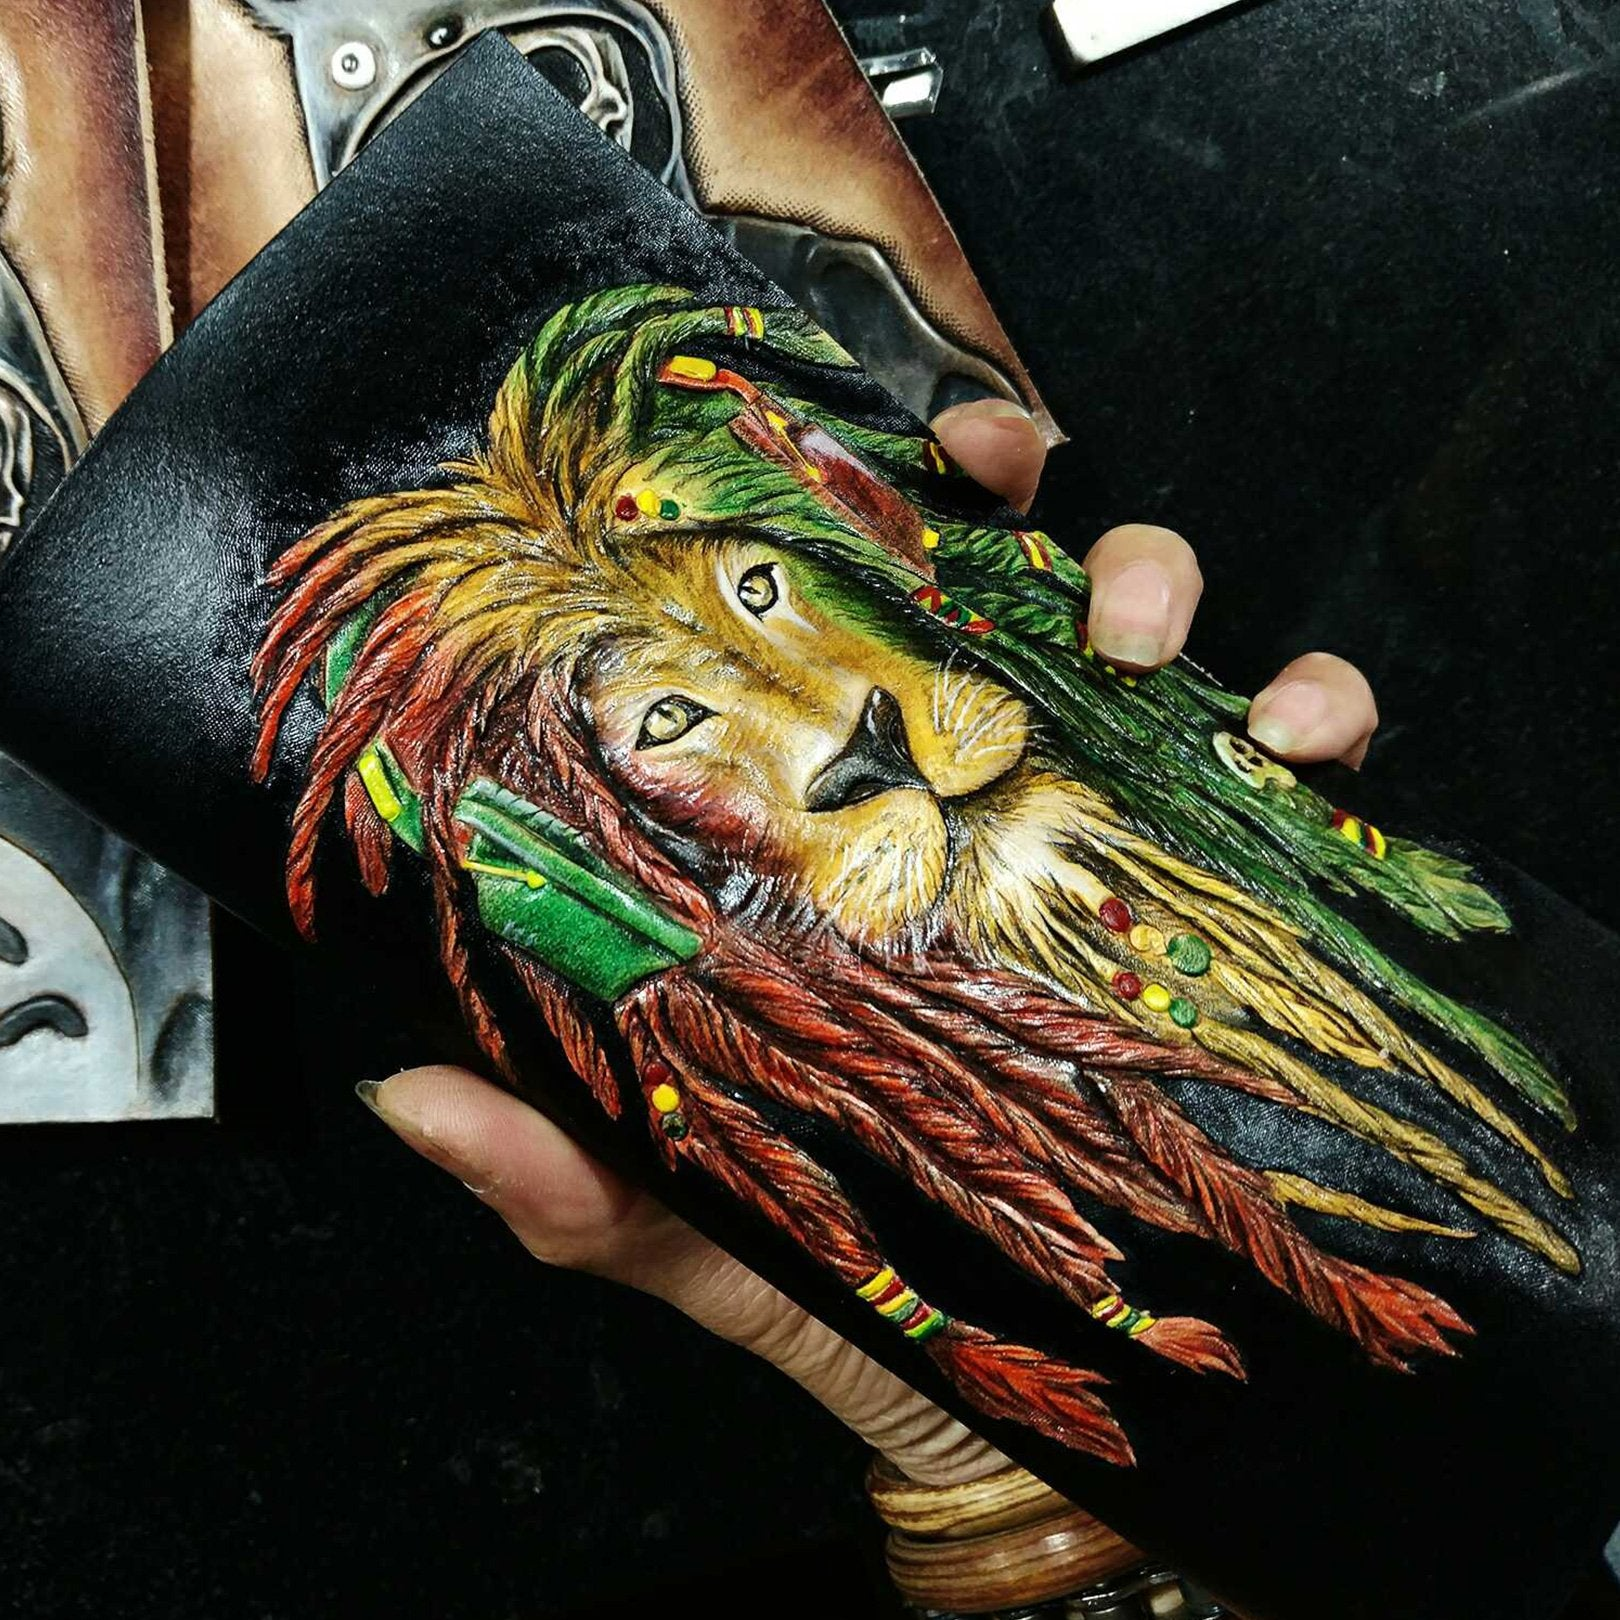 Handmade Leather Lion Tooled Mens Long Wallet Cool Leather Wallet Clutch Wallet for Men